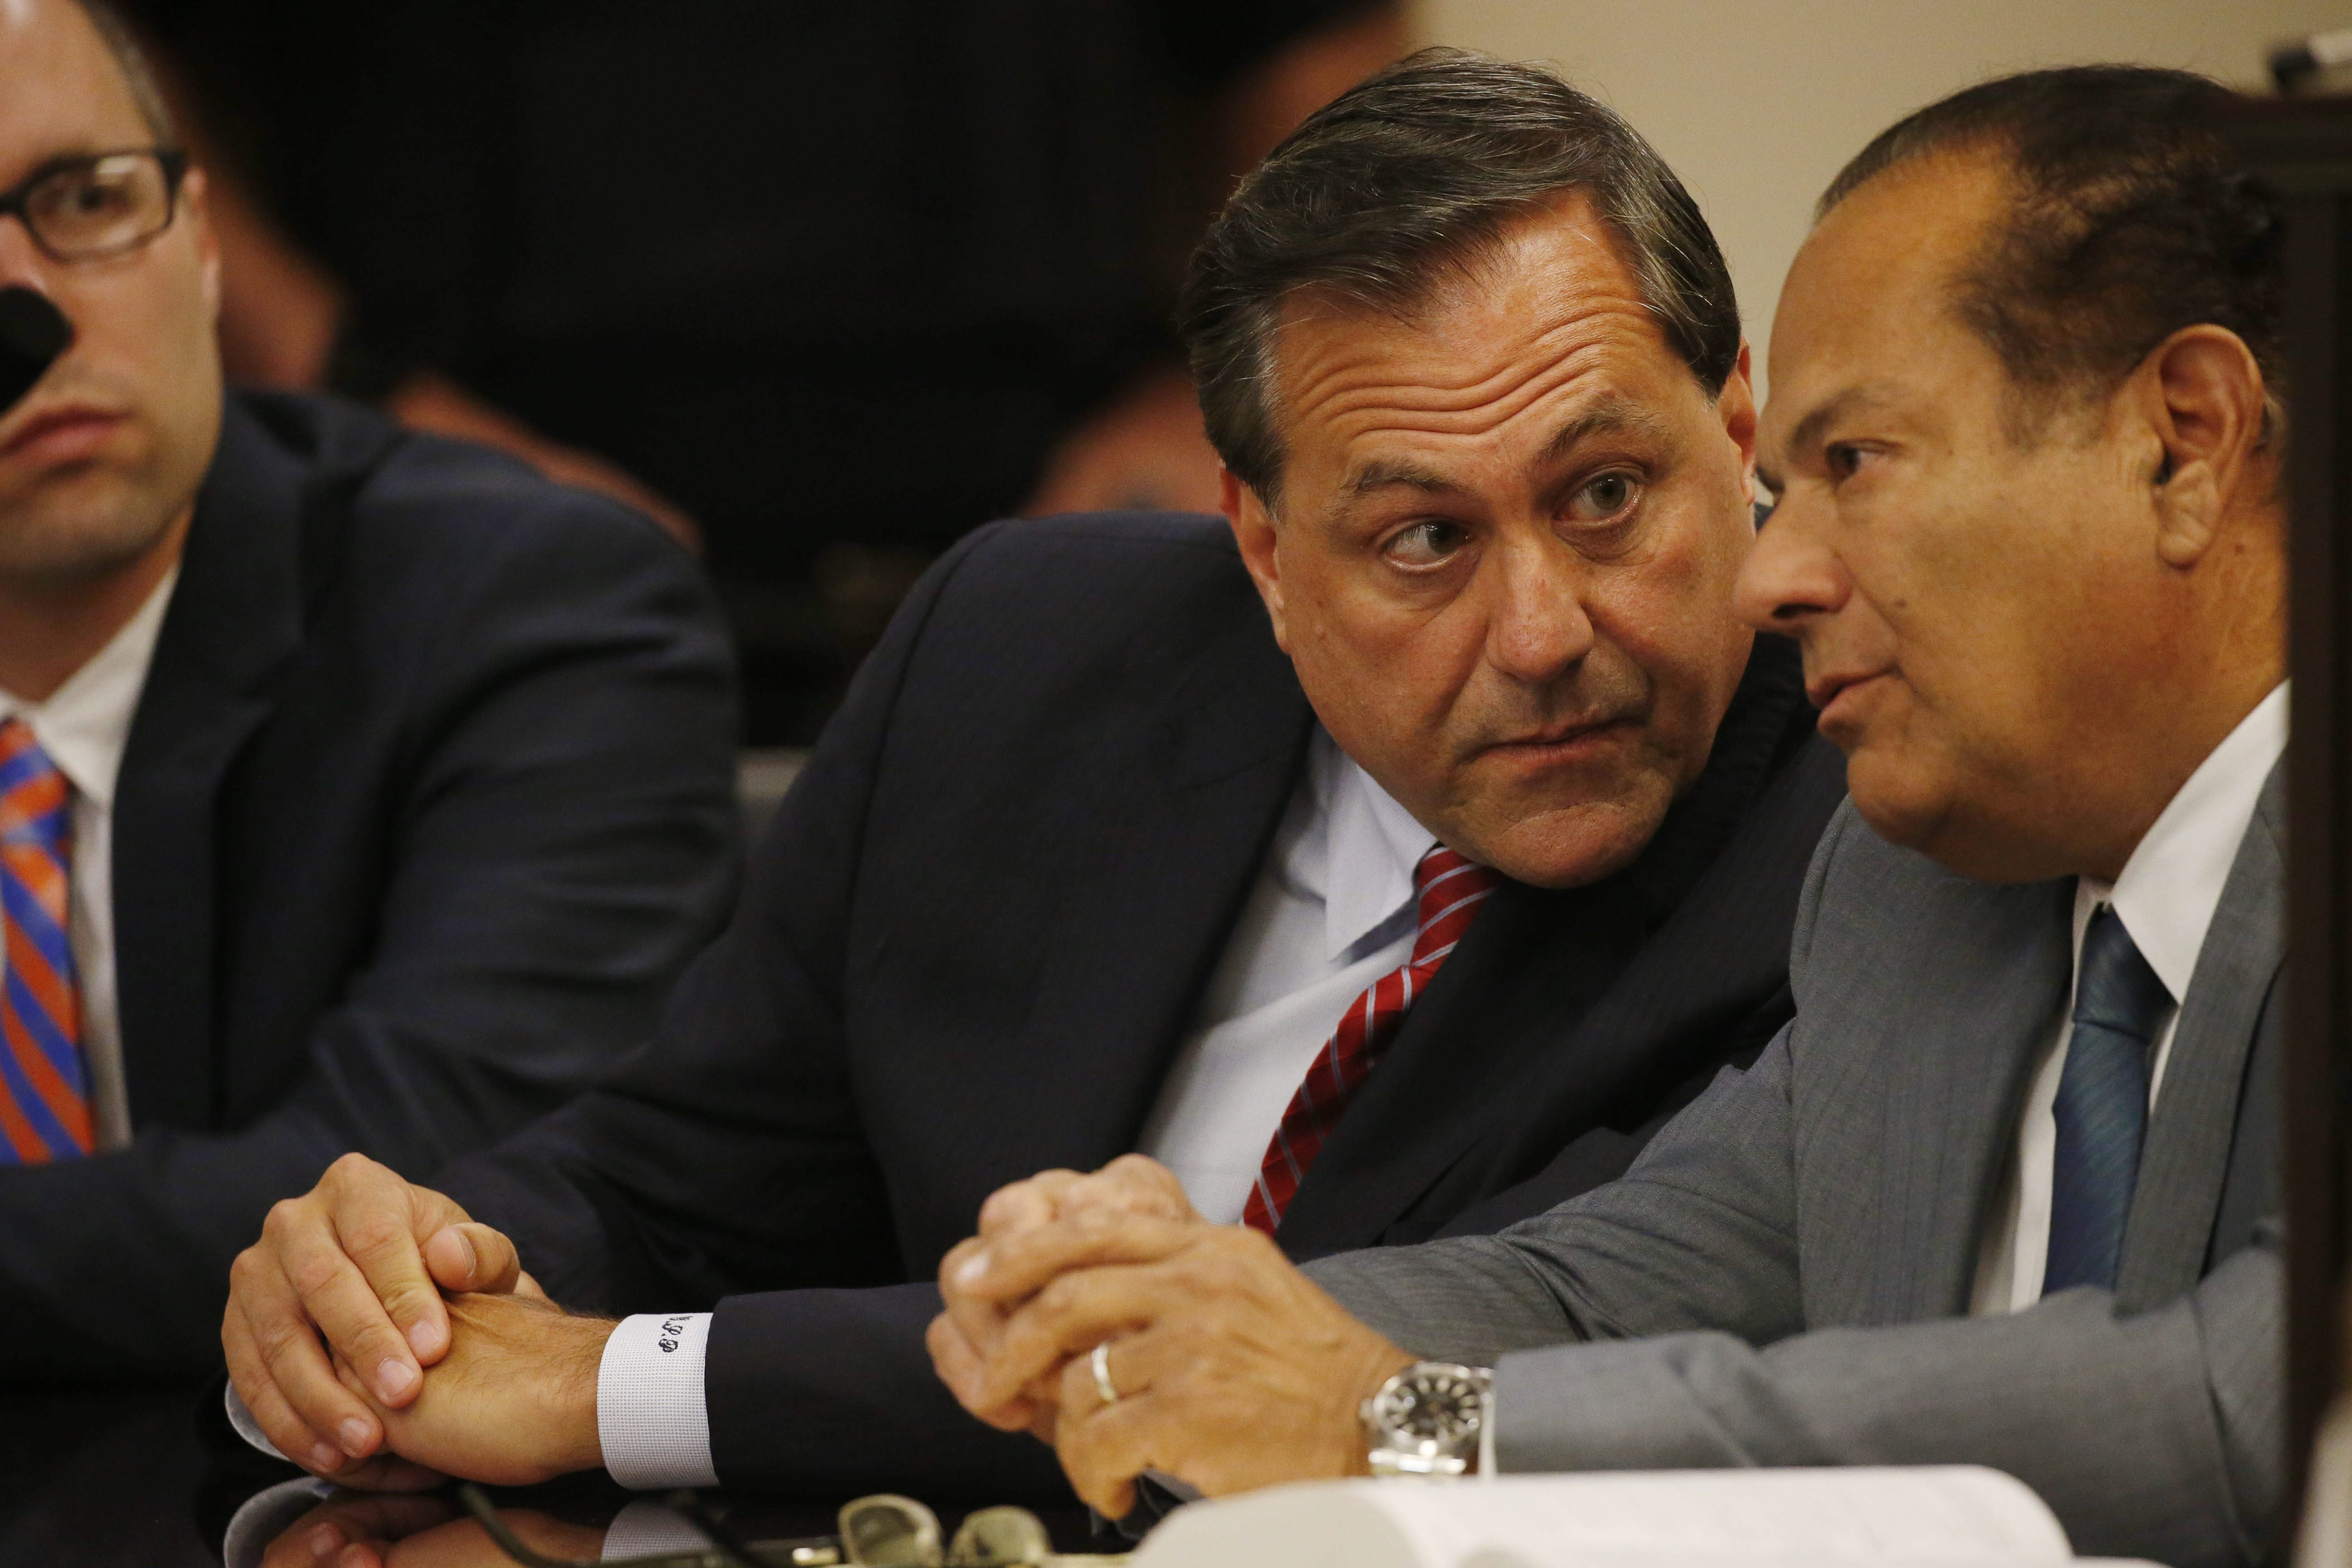 G. Steven Pigeon, center, confers with attorney Paul Cambria during his grand jury arraignment in State Supreme Court in June. (Derek Gee/Buffalo News)